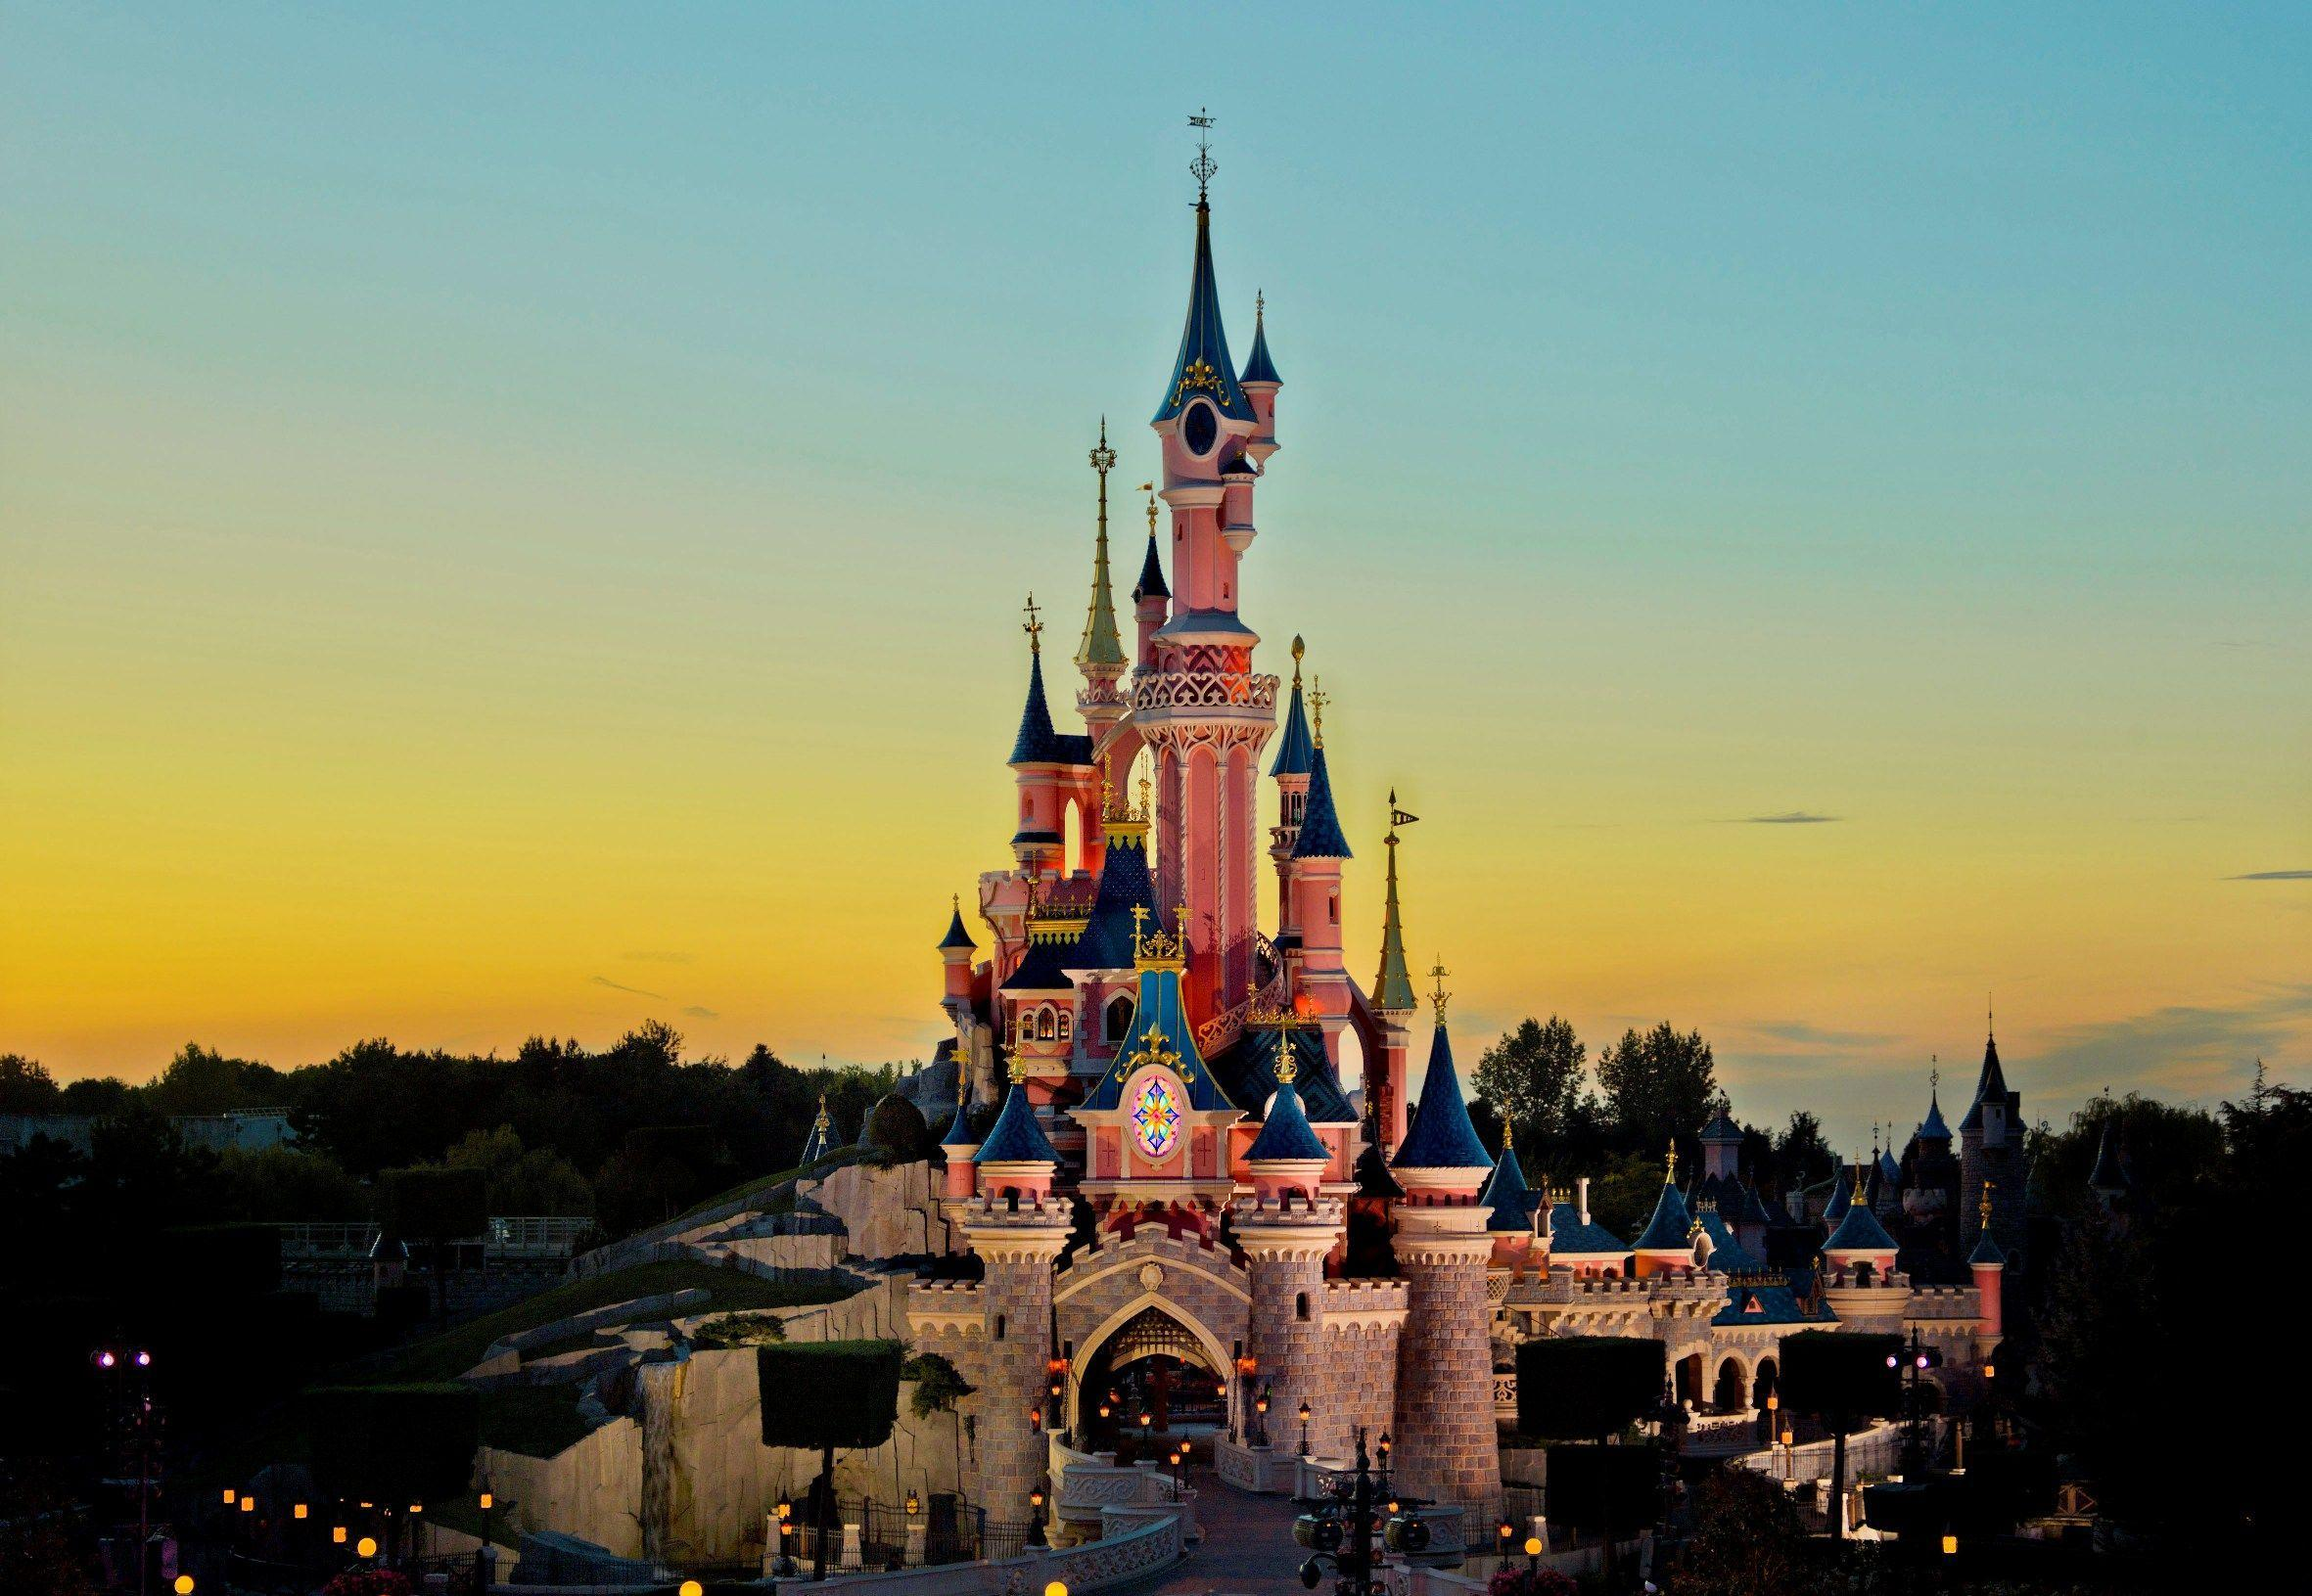 Castle Disneyland Paris Wallpapers Wallpaper Cave